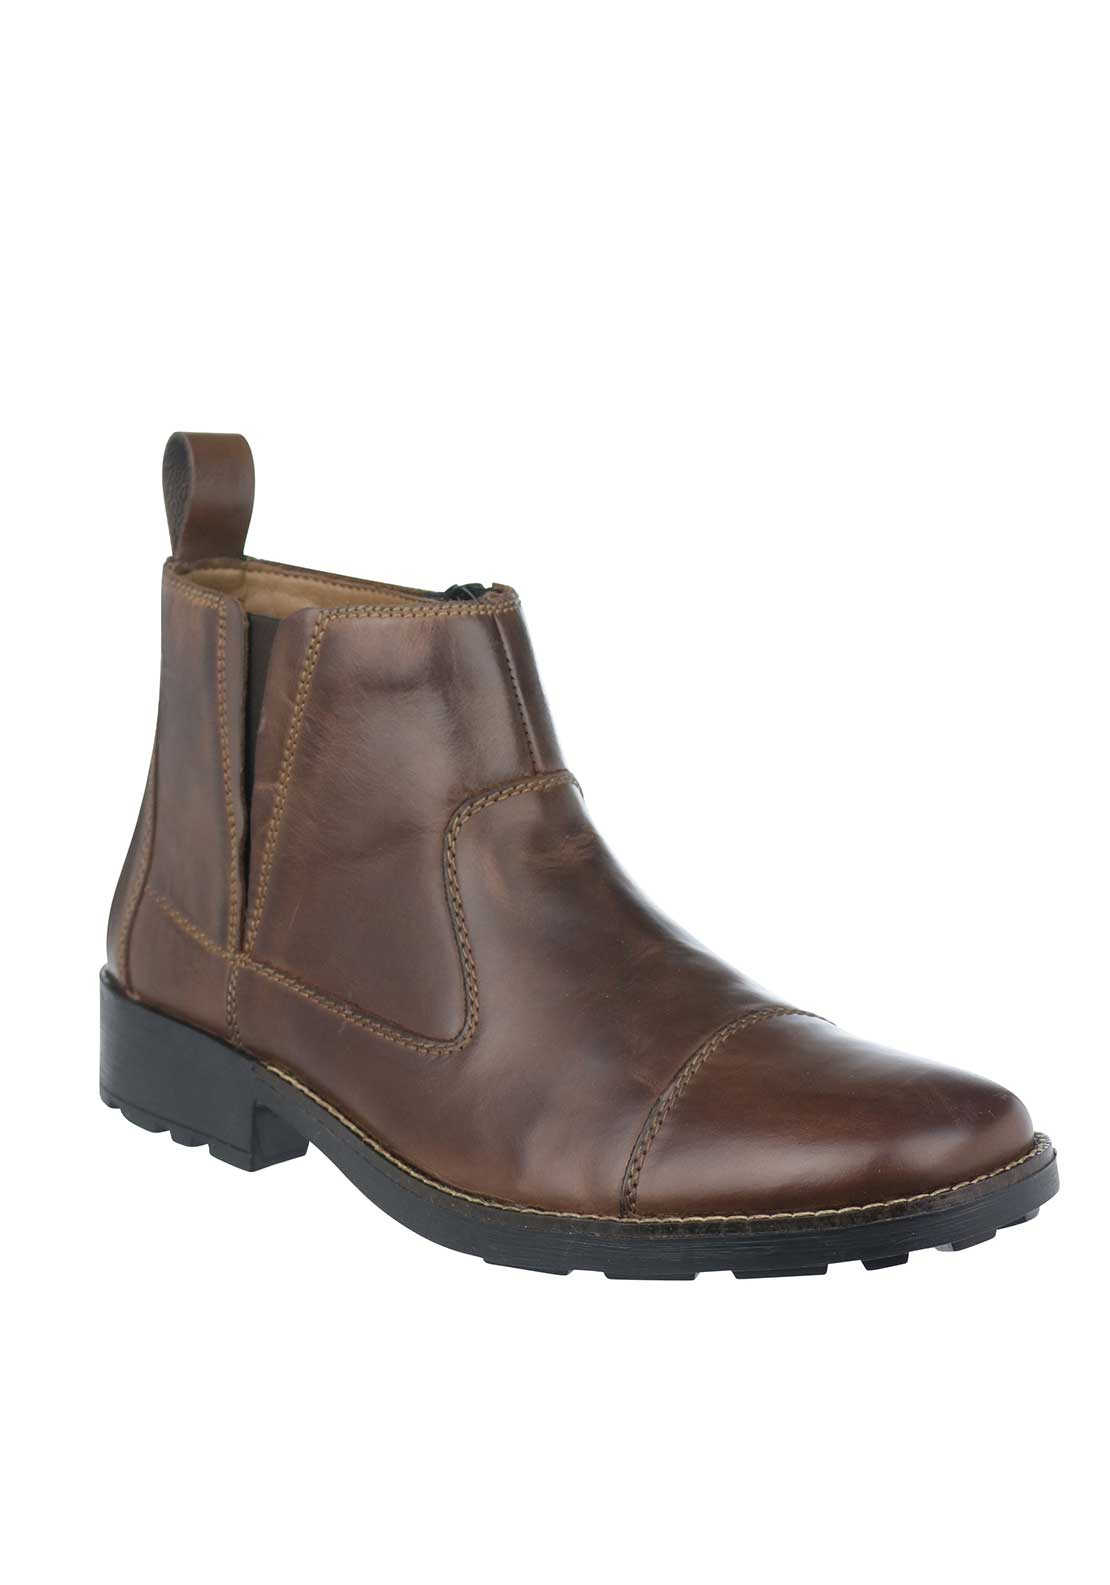 Rieker Mens Leather Chelsea Zip-Up Ankle Boot, Brown